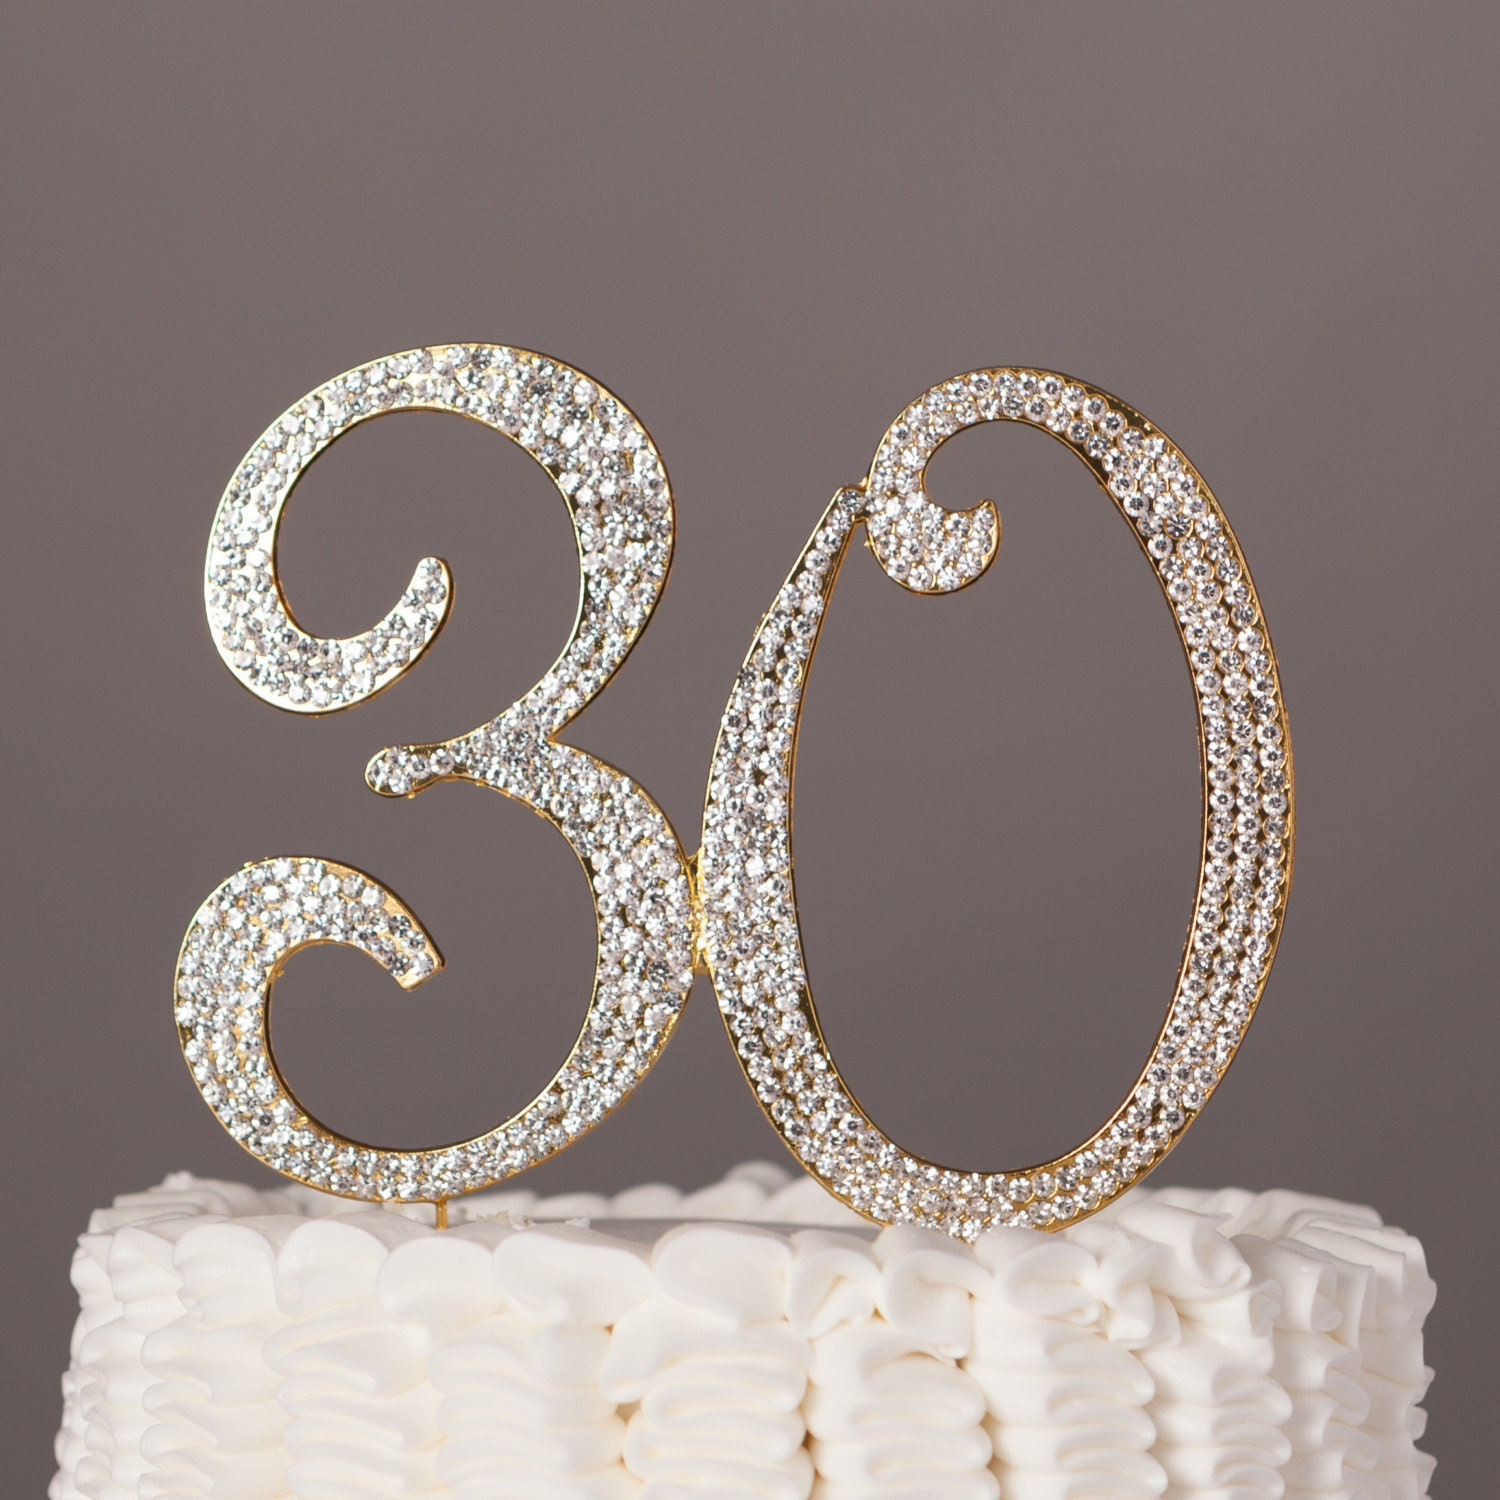 30 cake topper for 30th birthday or anniversary party for 30 cake decoration